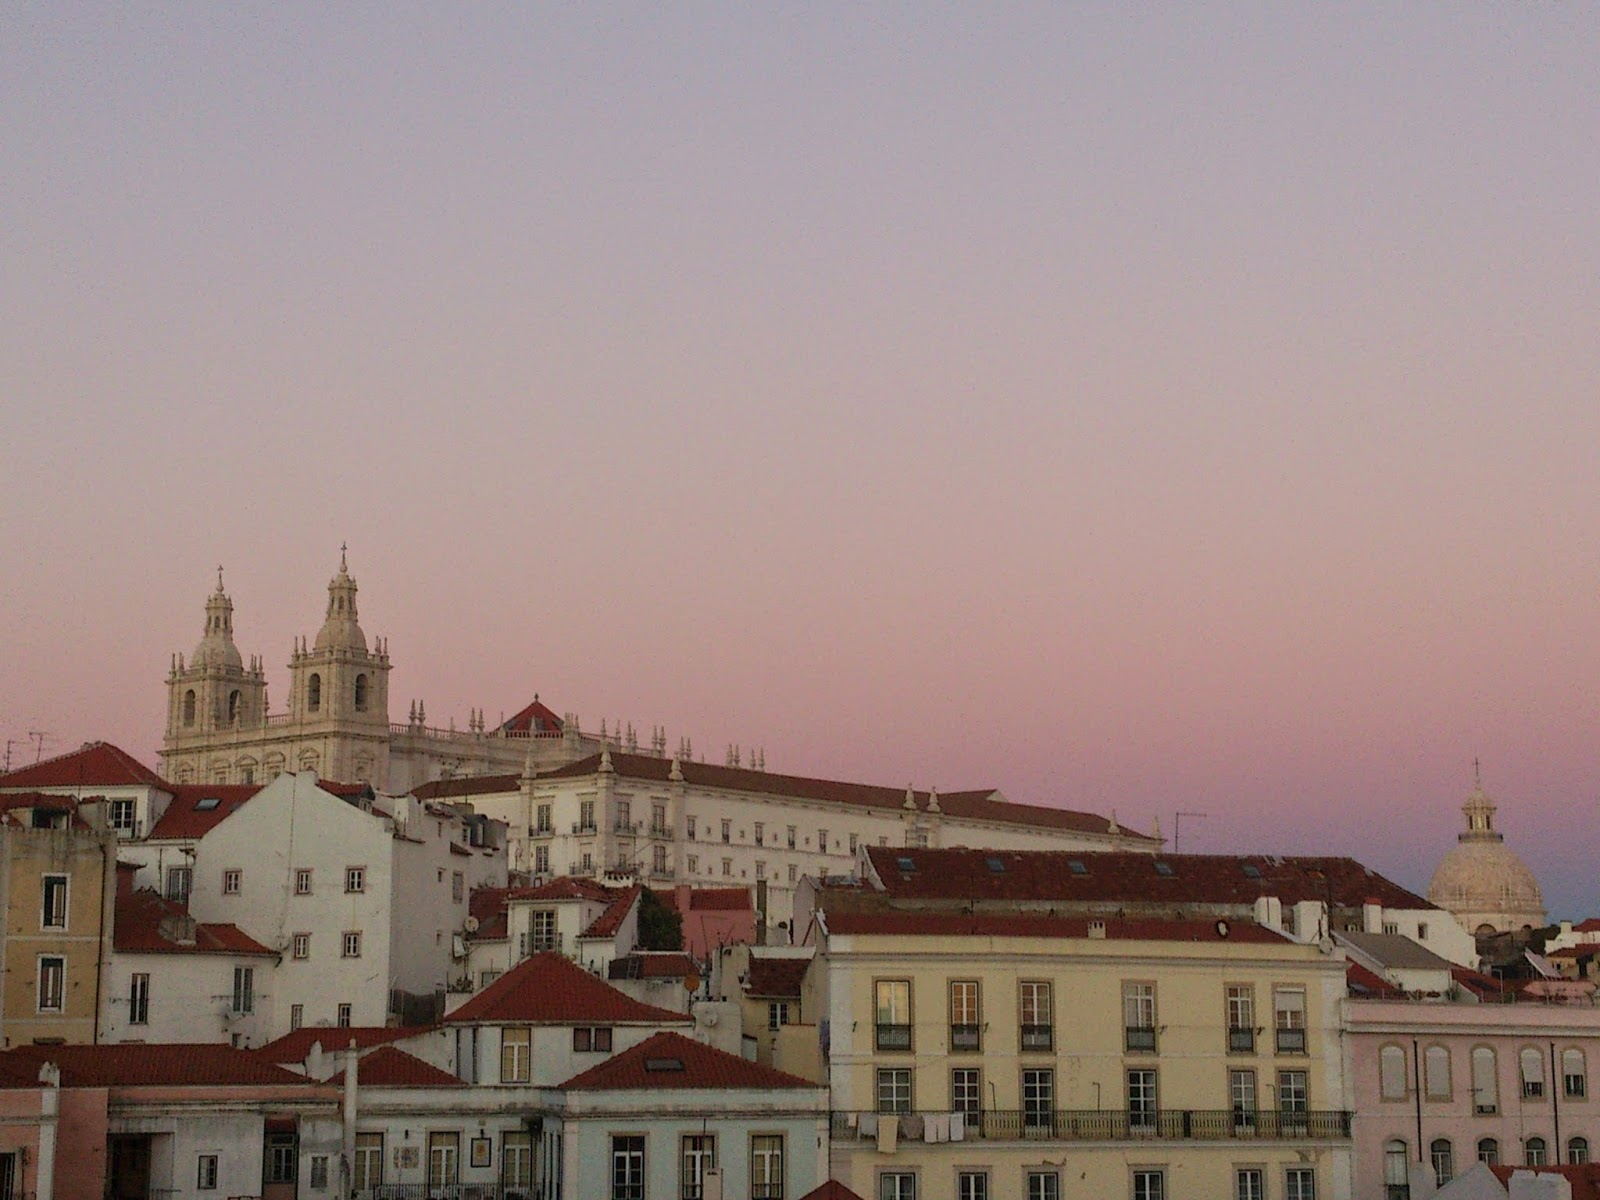 ByHaafner, sunset in Lisbon